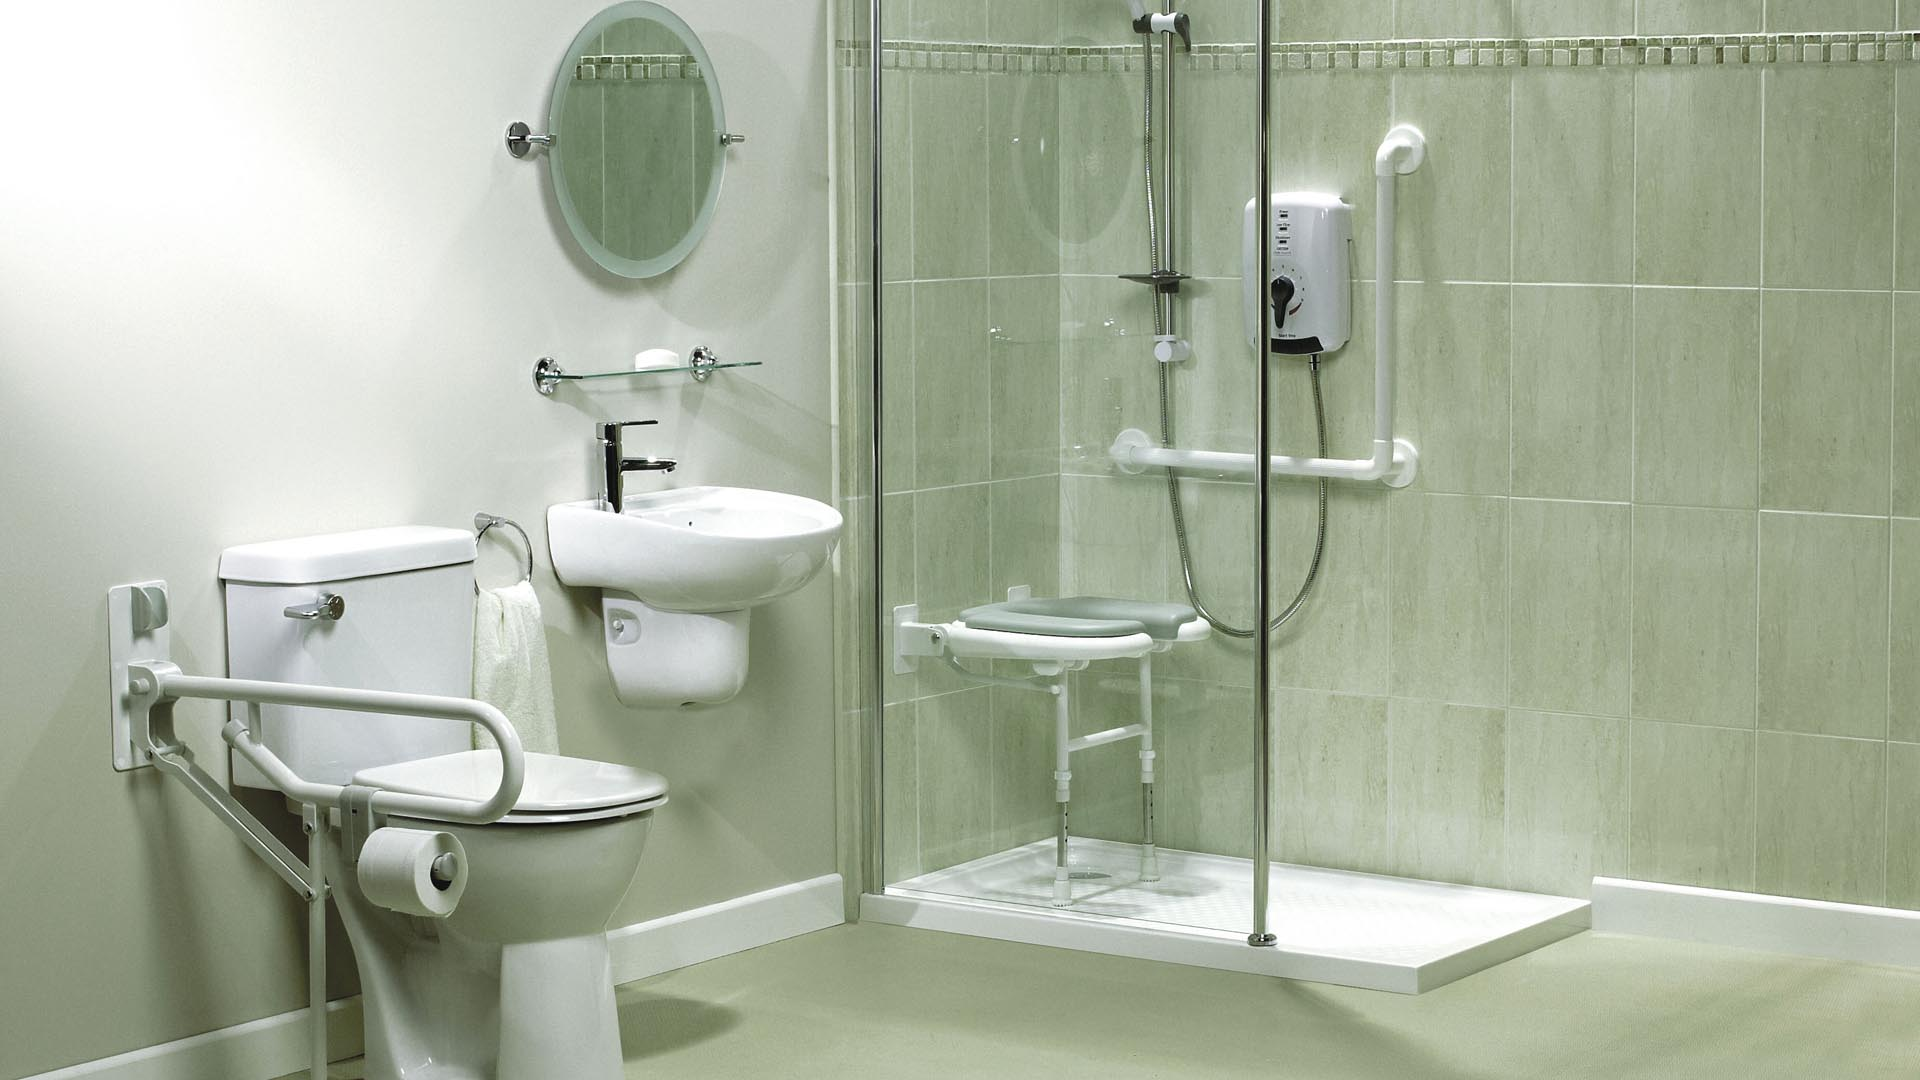 Bathroom Products Disabled Bathroom Products Woodhouse And Sturnham Ltd